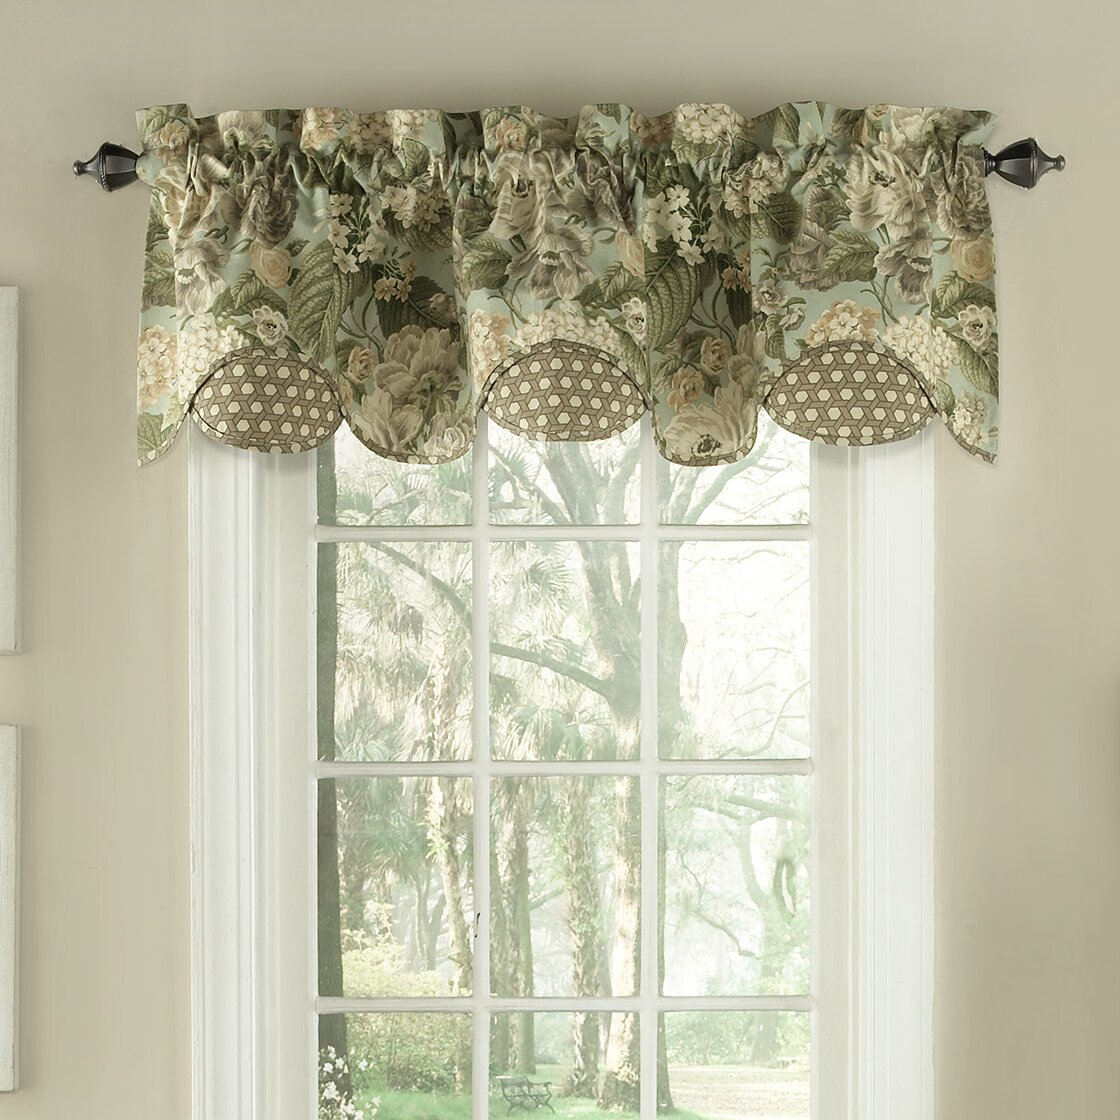 Waverly Garden Glory Scalloped Floral Curtain Valance